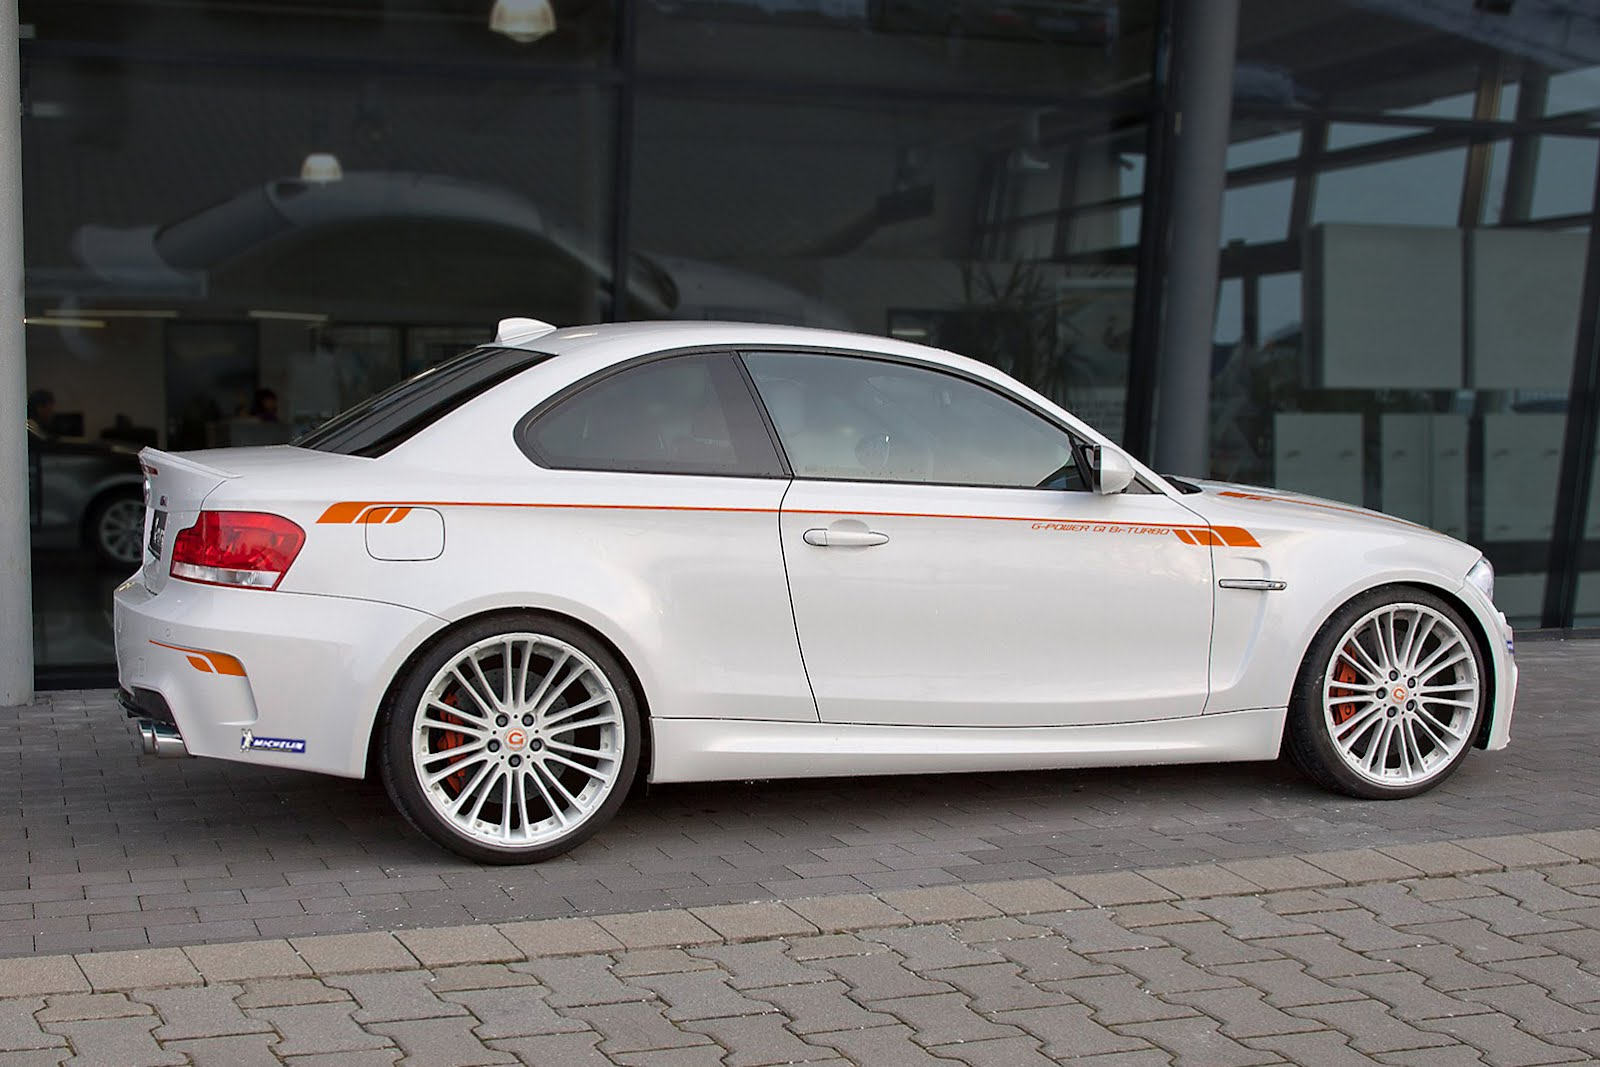 G-Power tunes the BMW 1 Series M Coupe